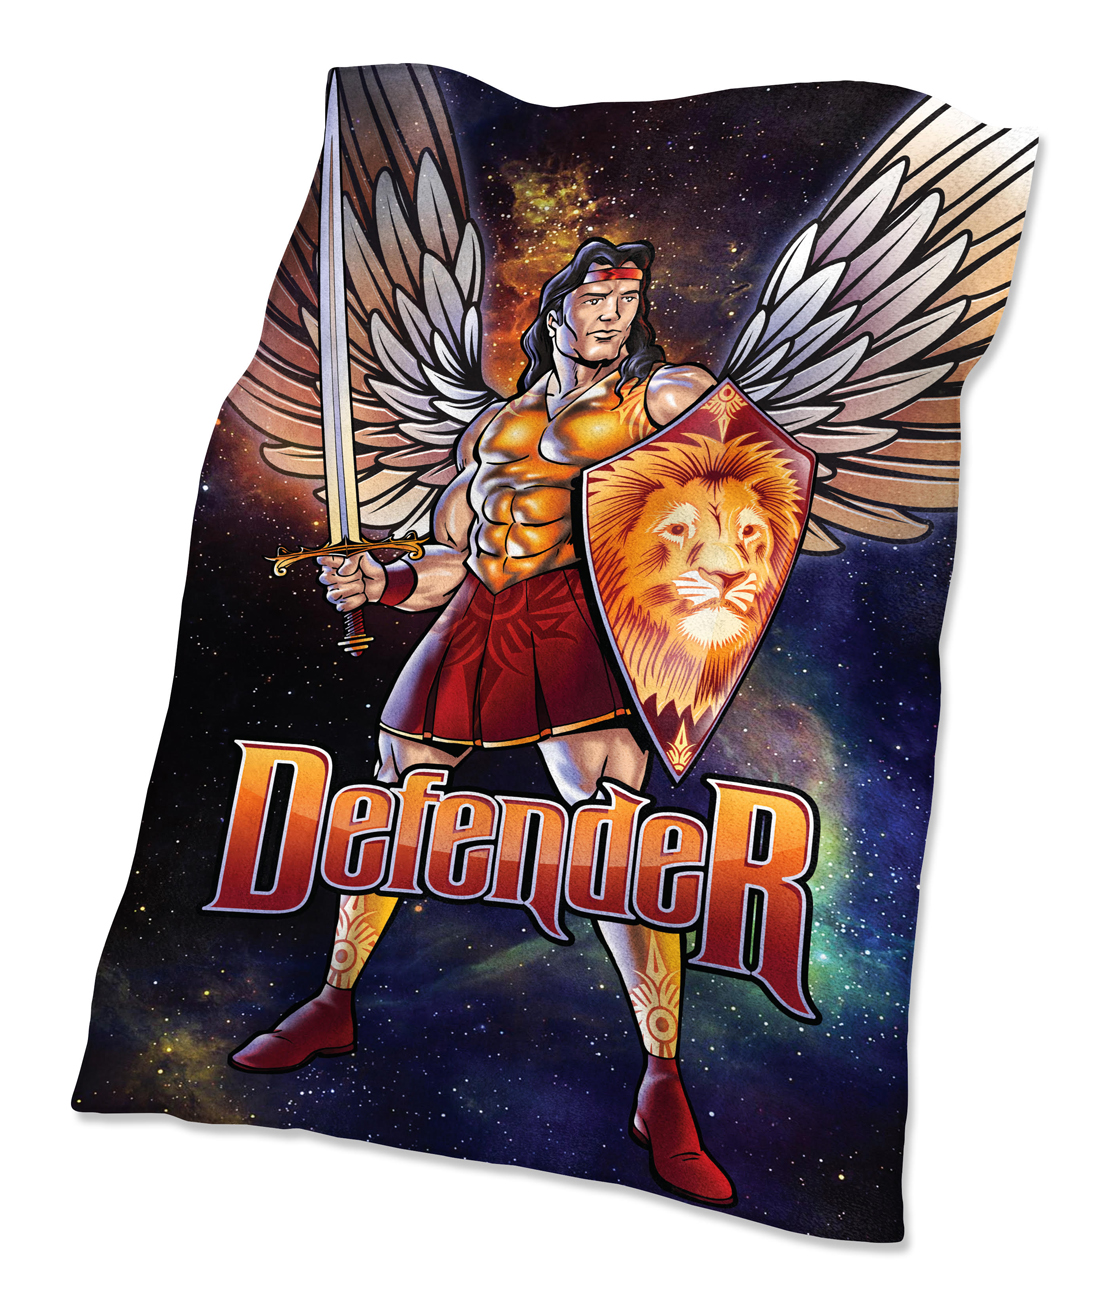 Defender Blanket - Suggested Donation of $35